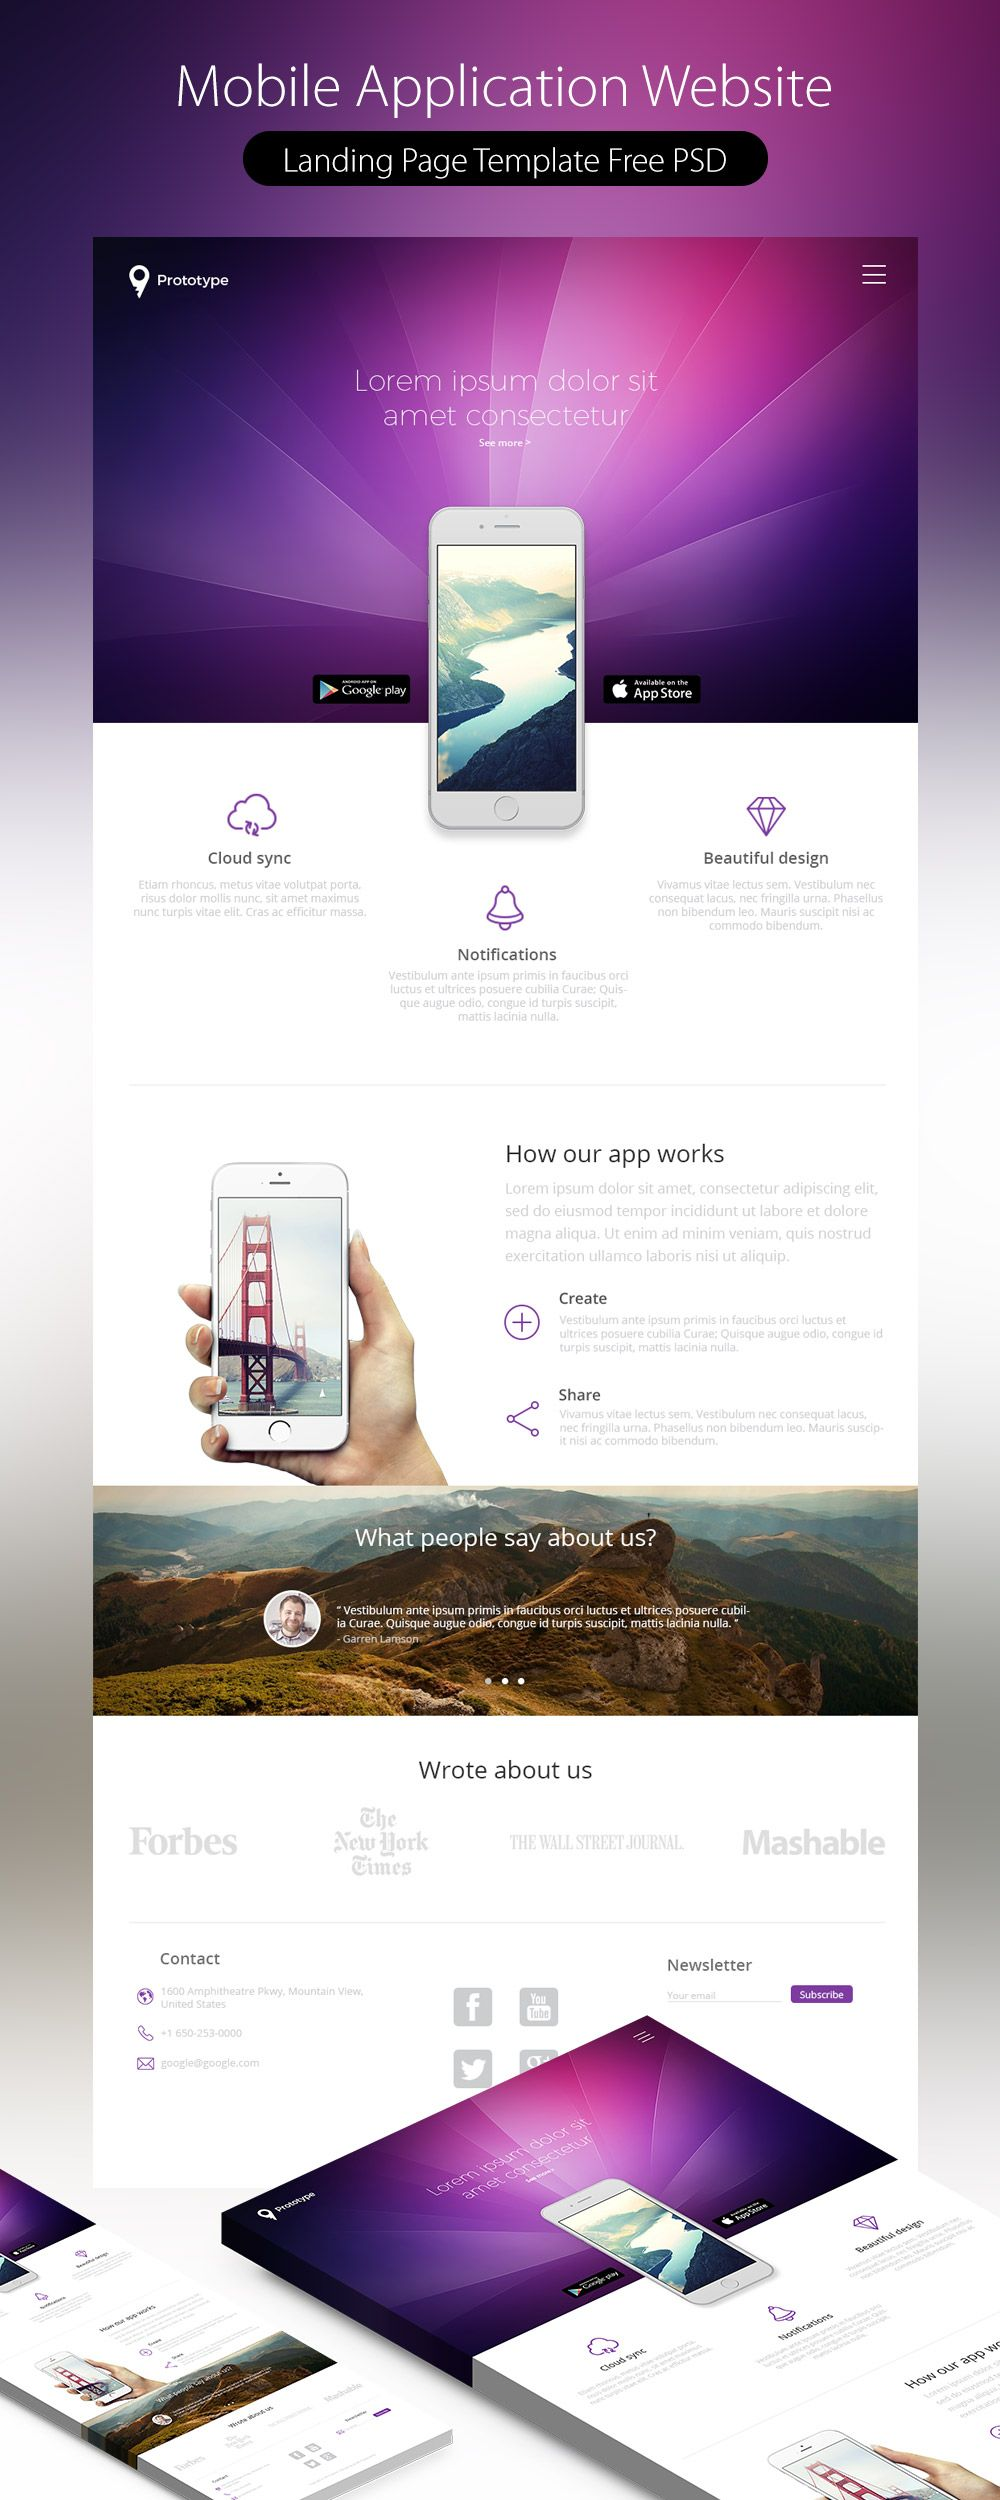 Mobile Lication Landing Page Template Free Psd